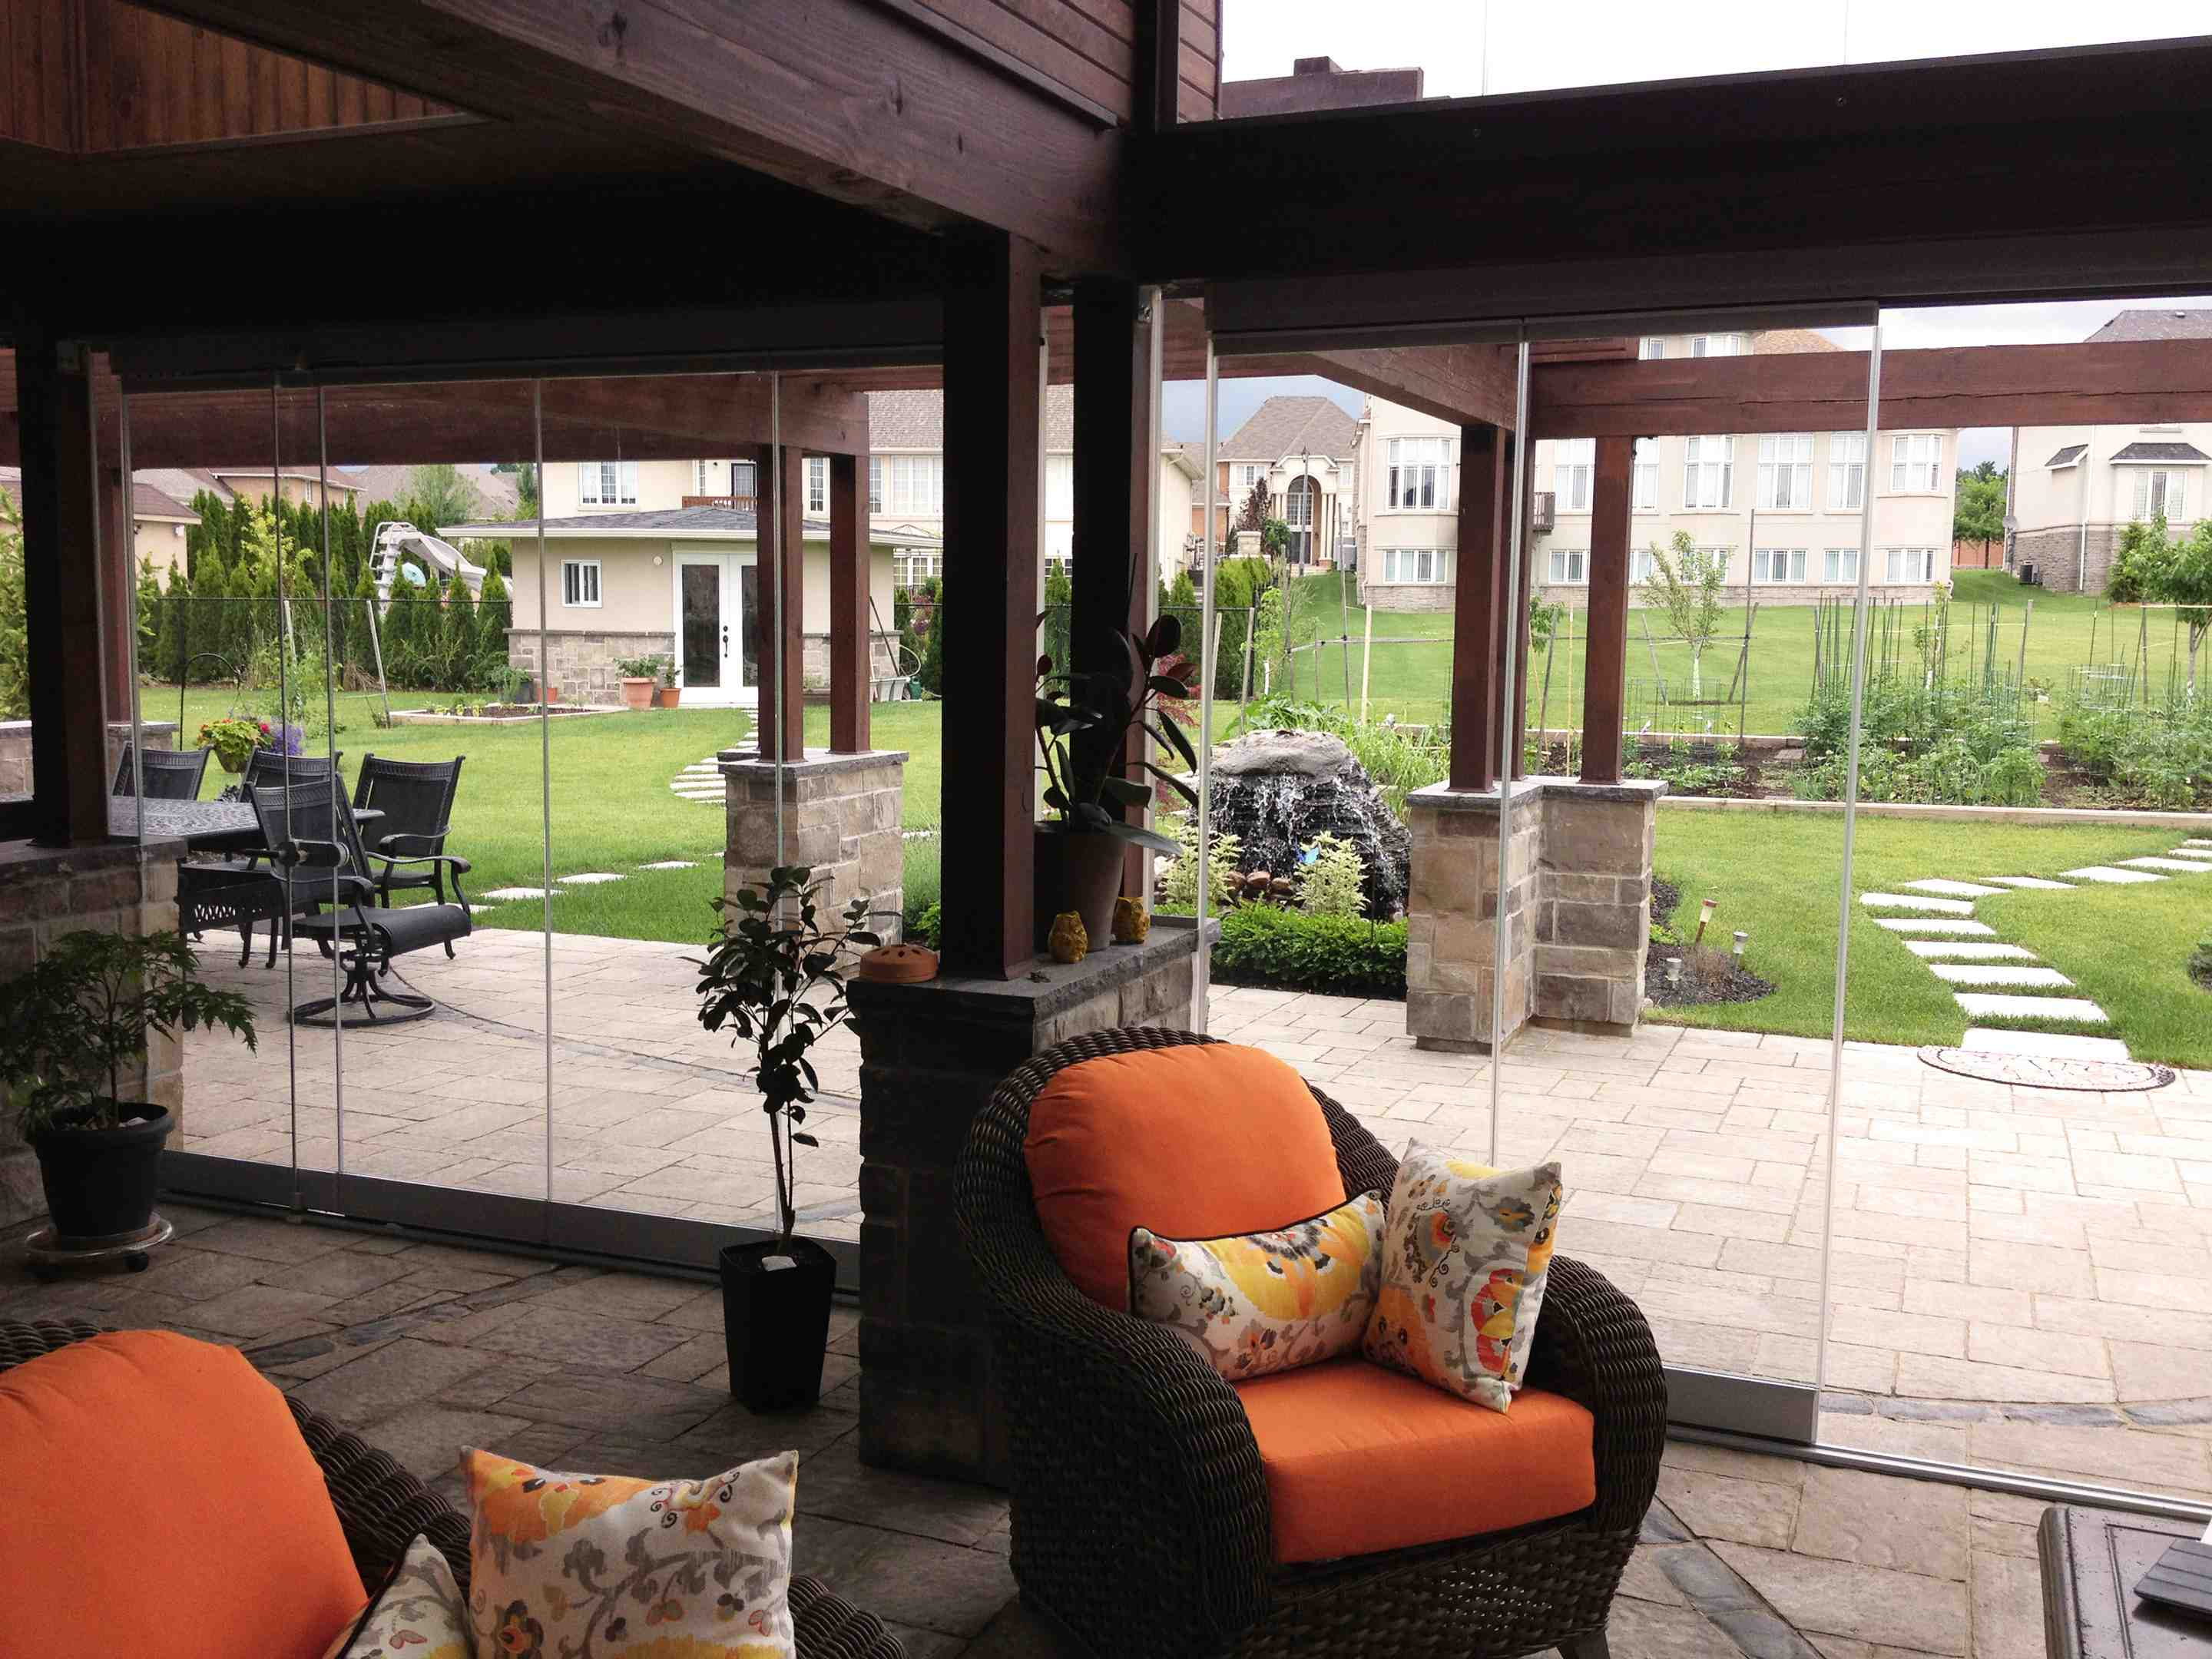 sunroom, sunroom companies in buffalo, buffalo sunrooms, sunroom home additions, beautiful sunrooms, sunroom inspirations, sunroom ideas, buffalo sunrooms